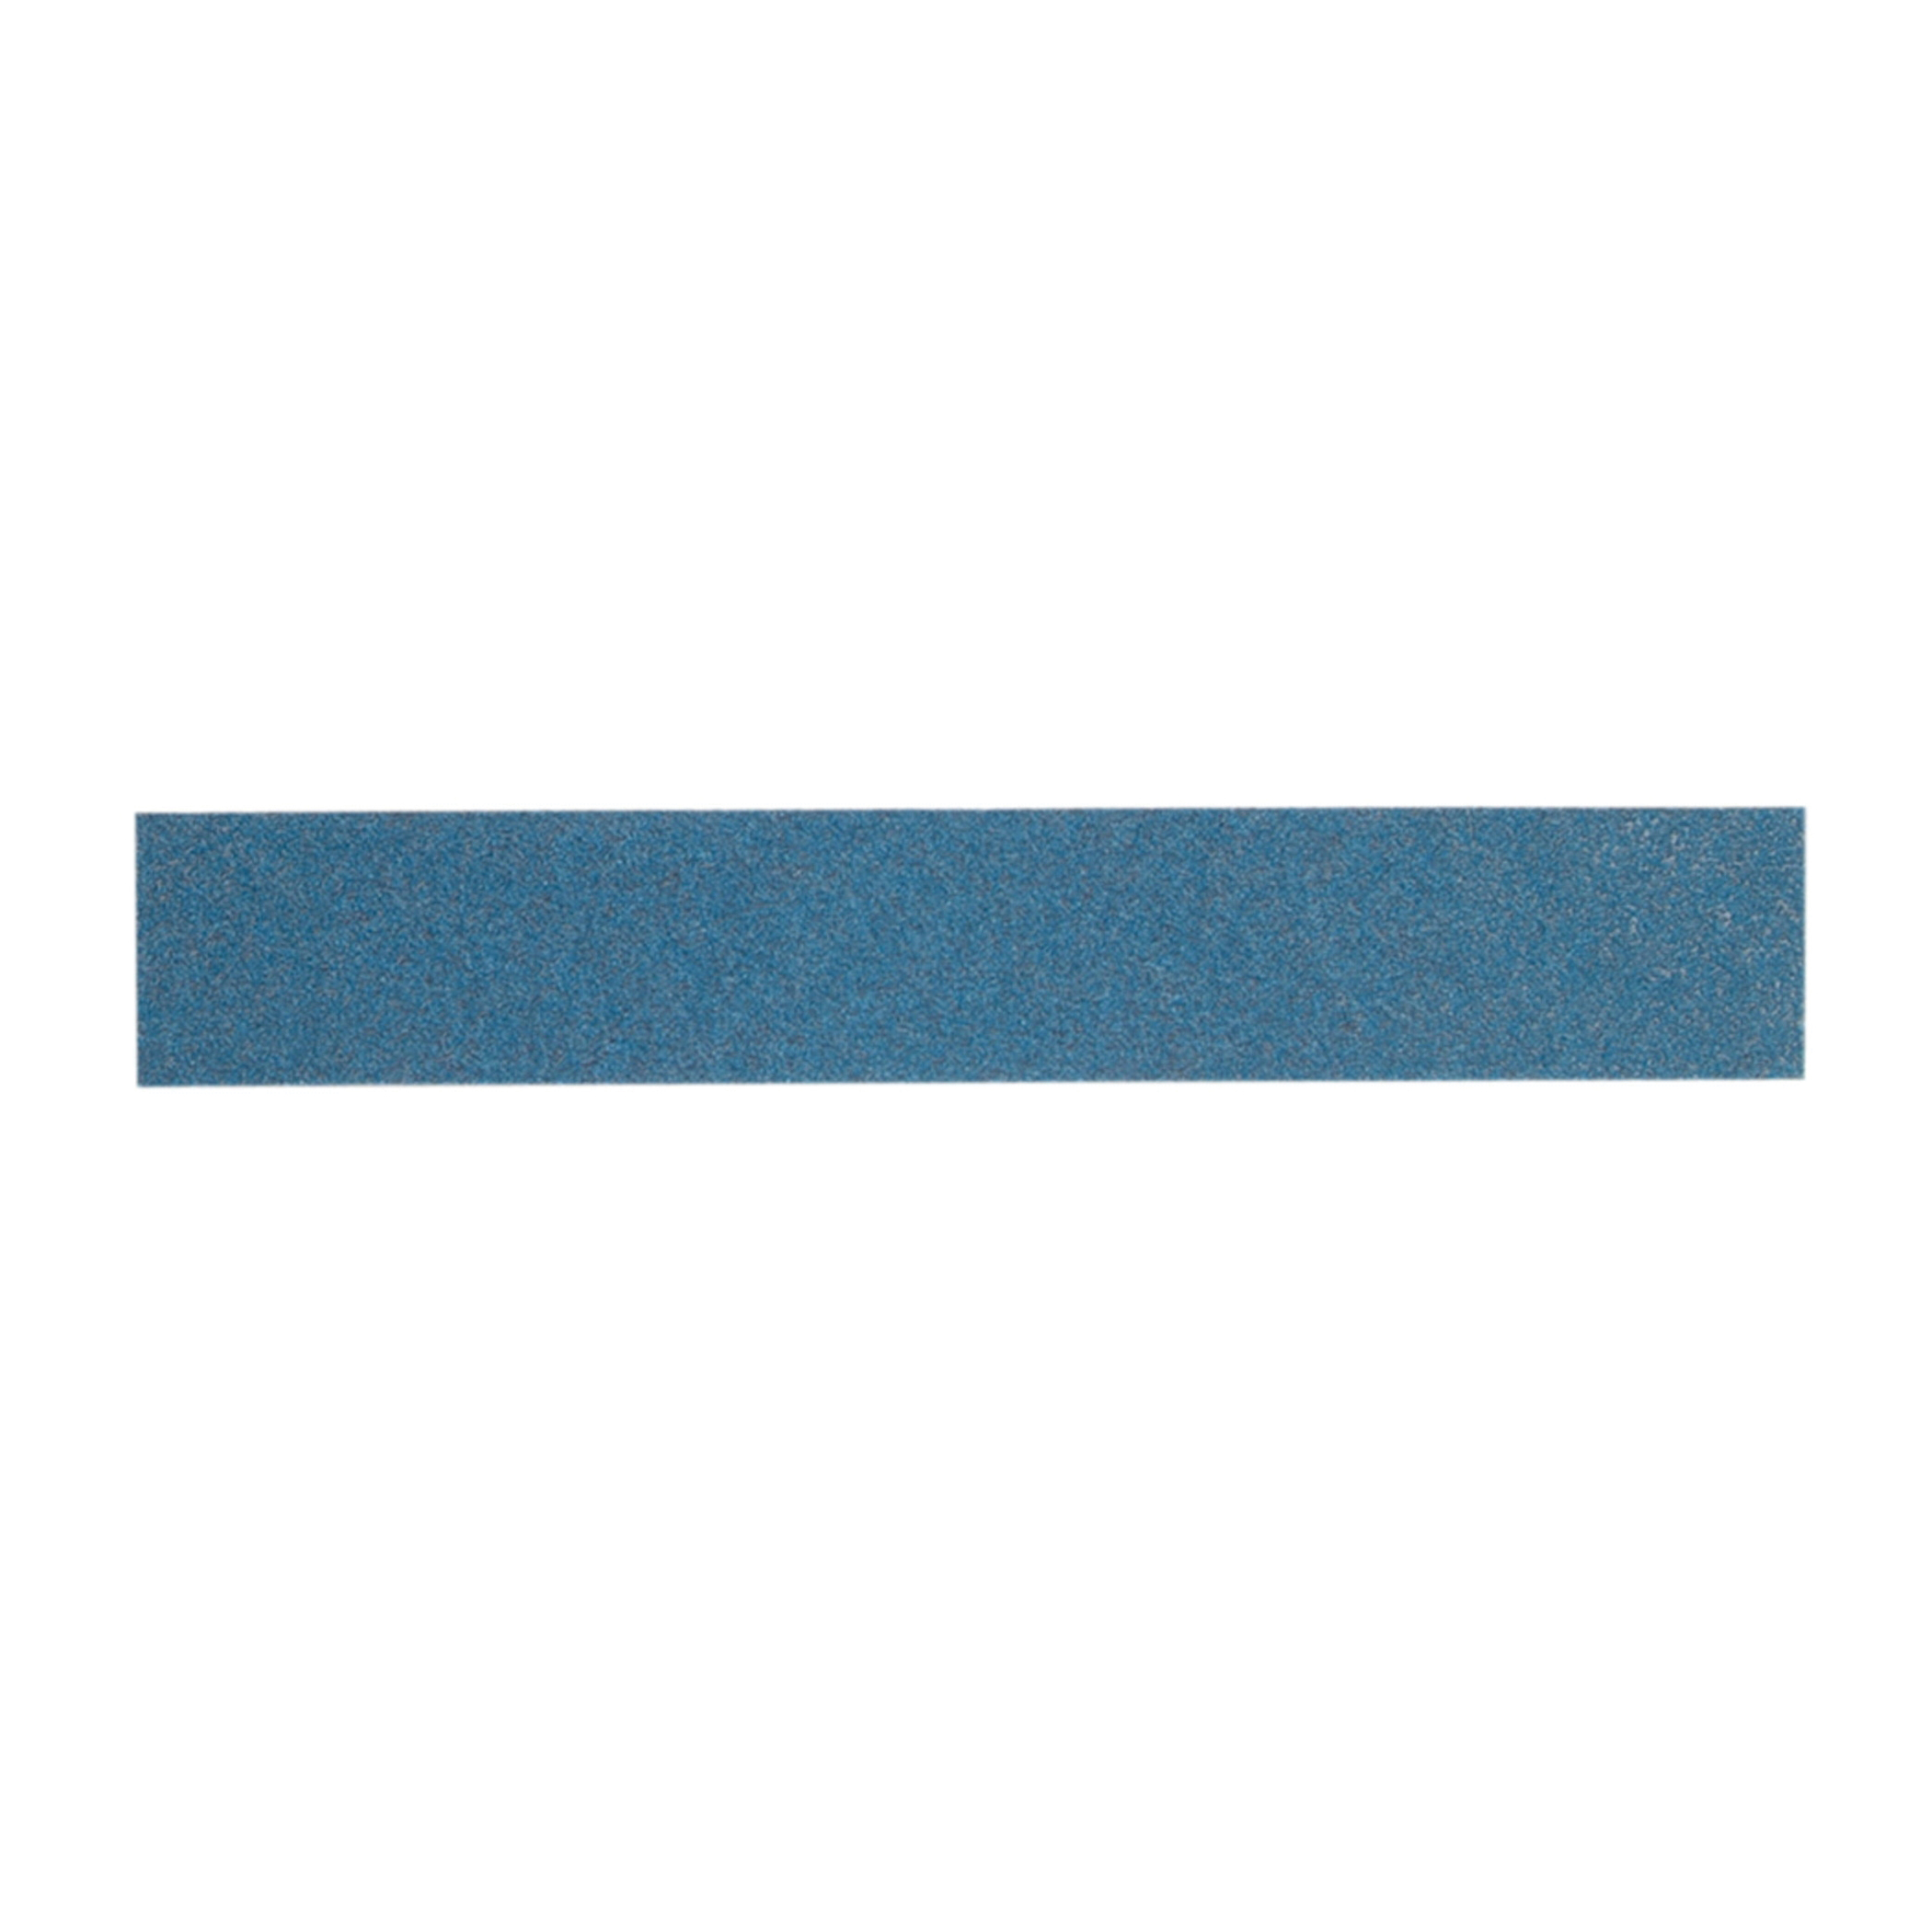 Norton® BlueFire® 66261123609 H875P PSA Coated File Strip, 16-1/2 in L x 2-3/4 in W, 40 Grit, Extra Coarse Grade, Zirconia Alumina Abrasive, Paper Backing